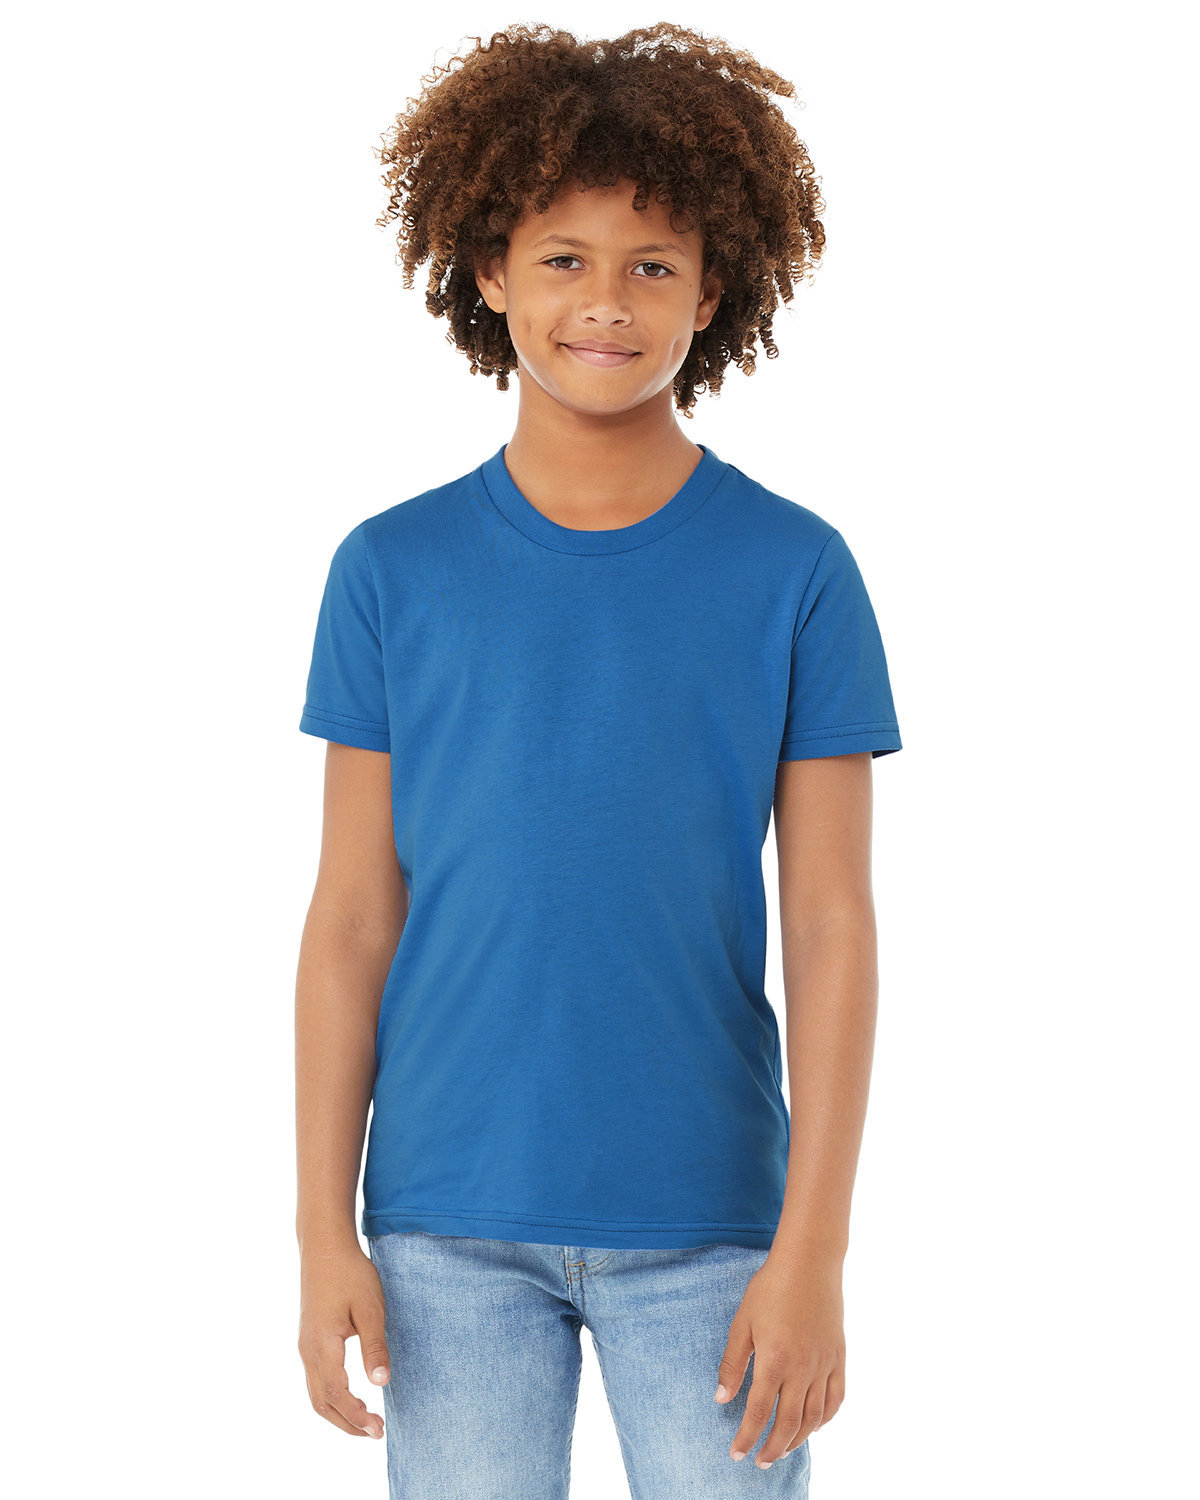 Bella + Canvas Youth Jersey T-Shirt COLUMBIA BLUE